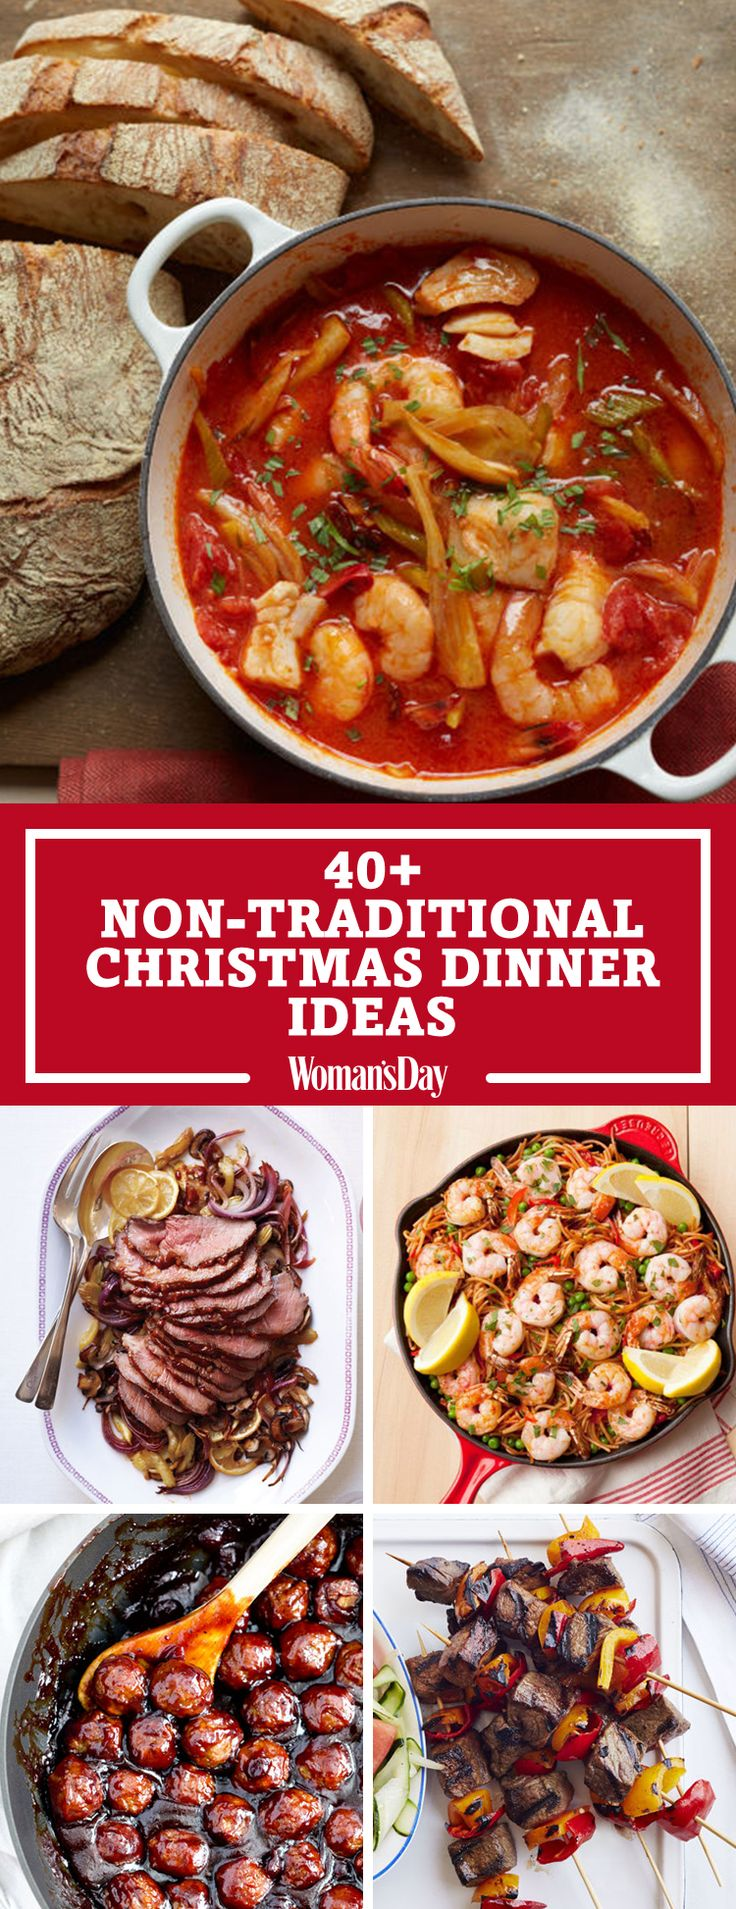 Save these non-traditional Christmas dinner ideas for later by pinning this image and follow Woman's Day on Pinterest for more.